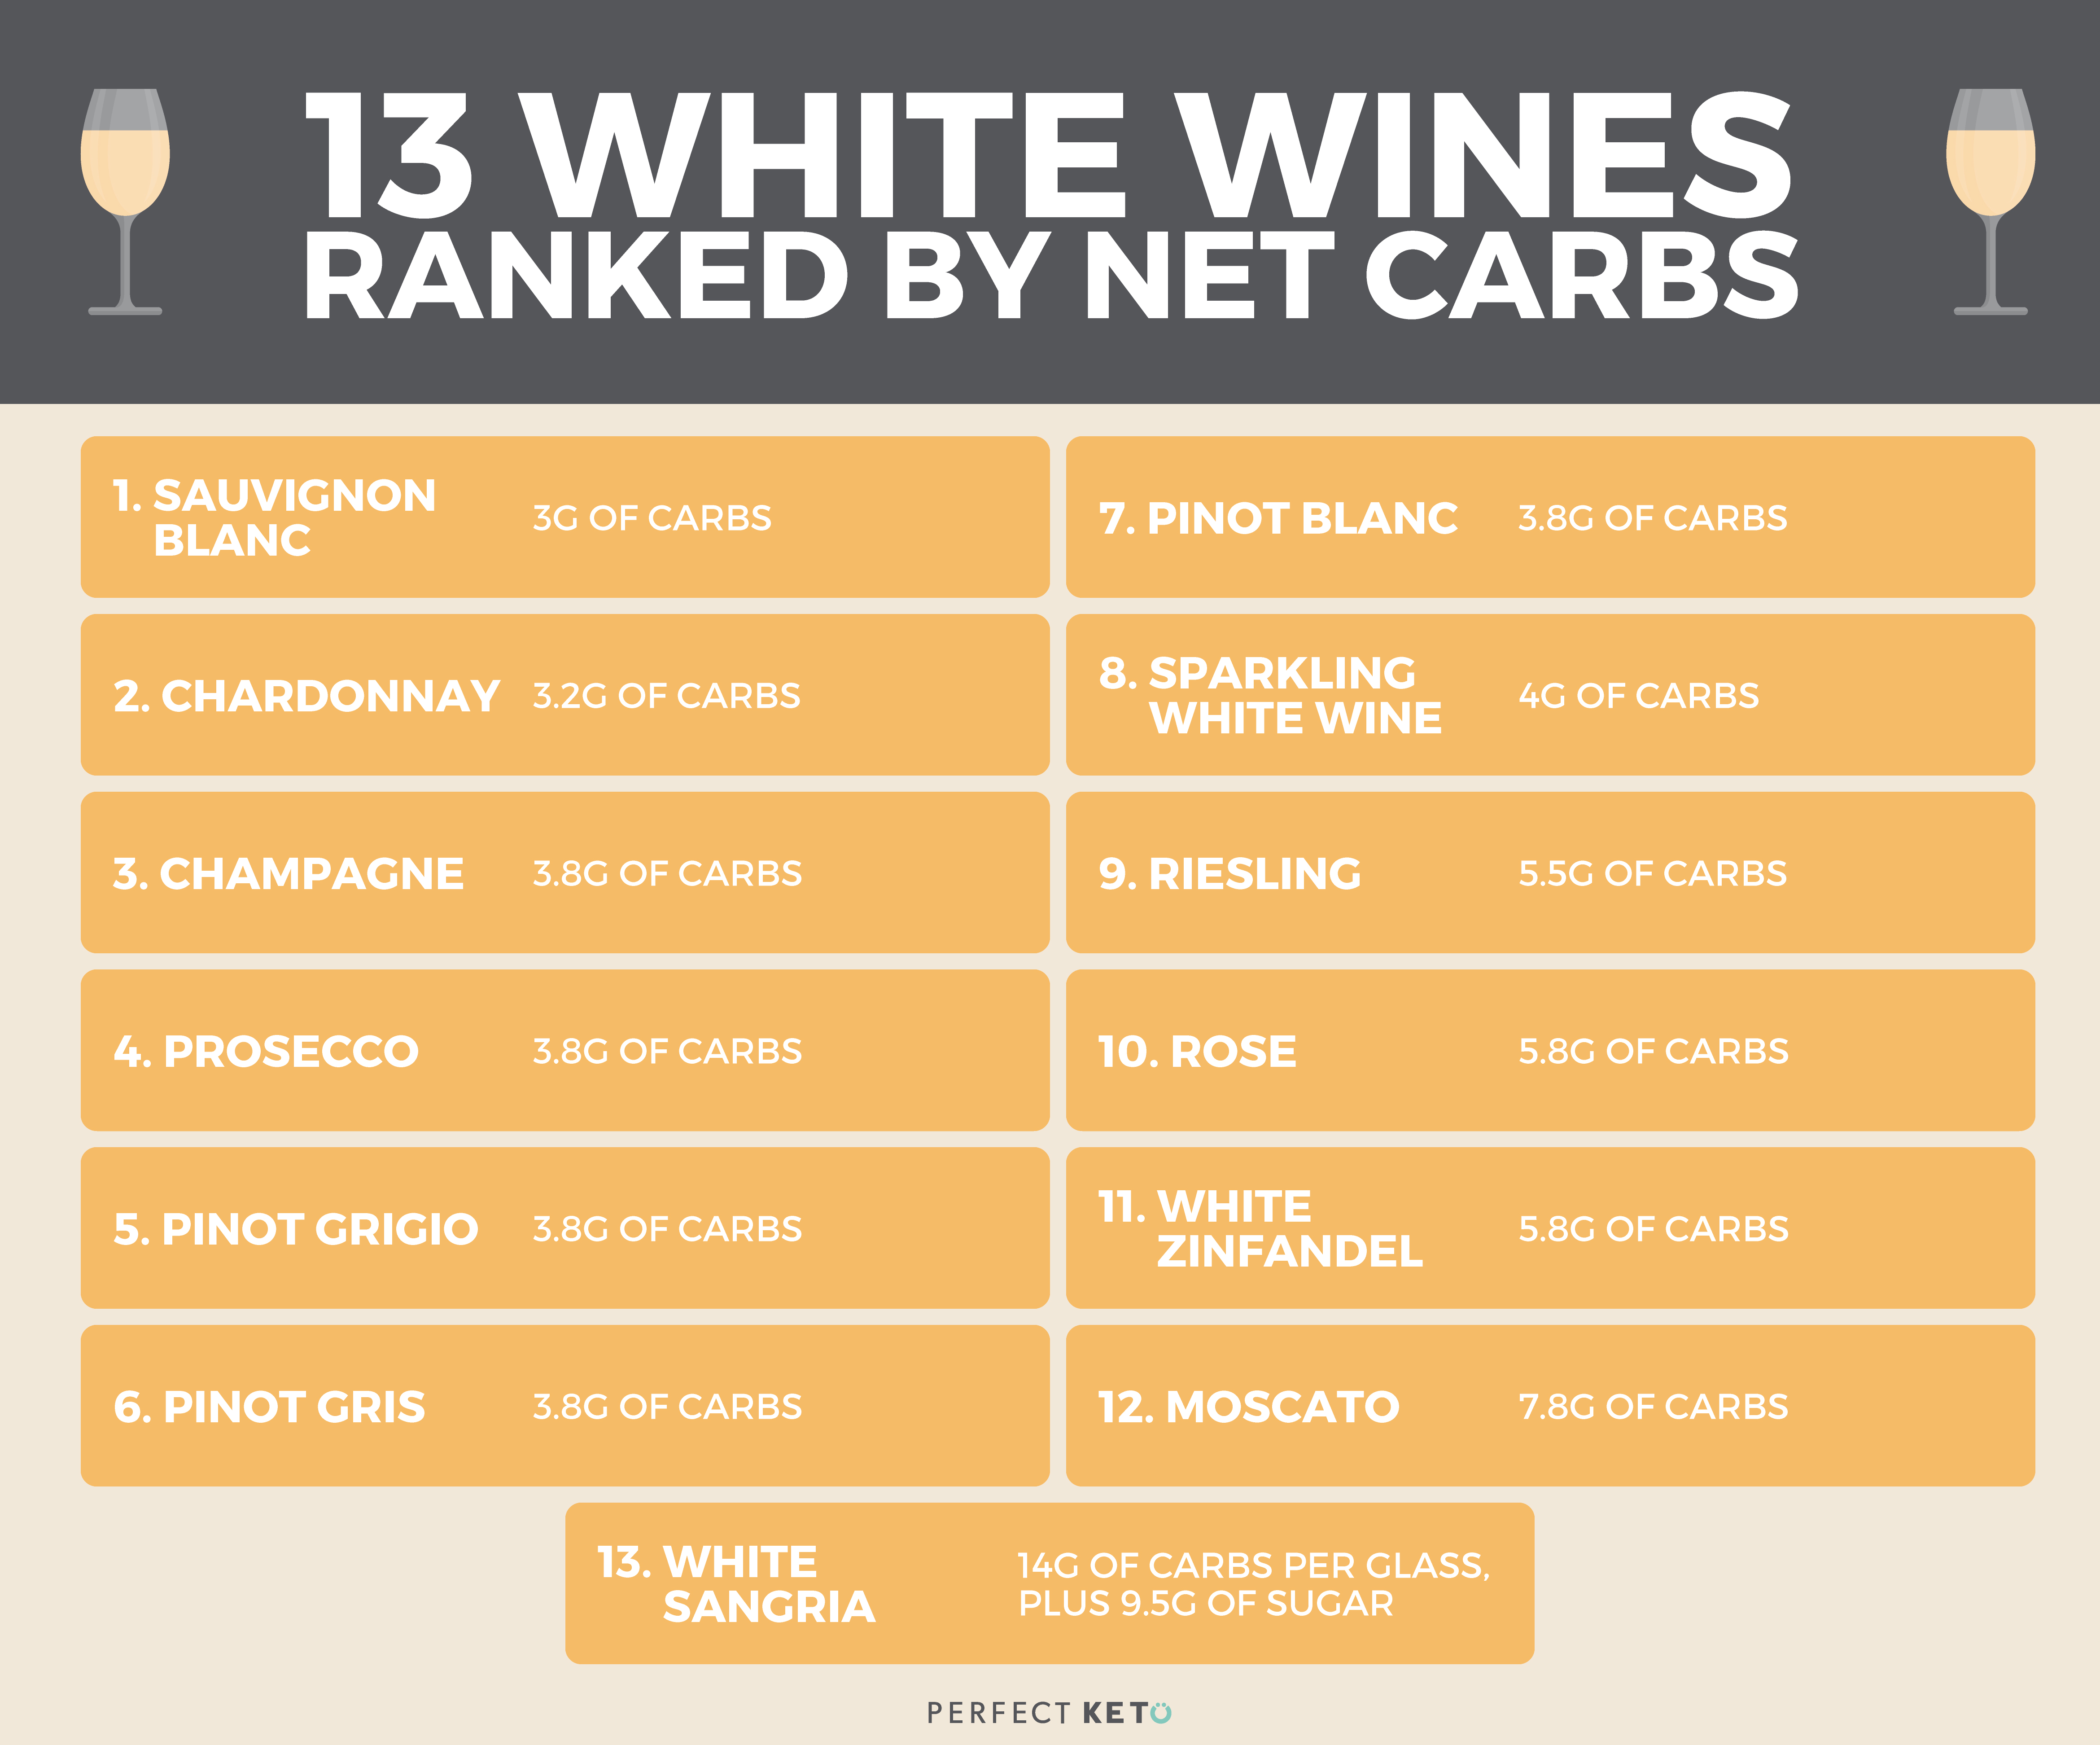 Keto wine: 13 white wines ranked by net carbs